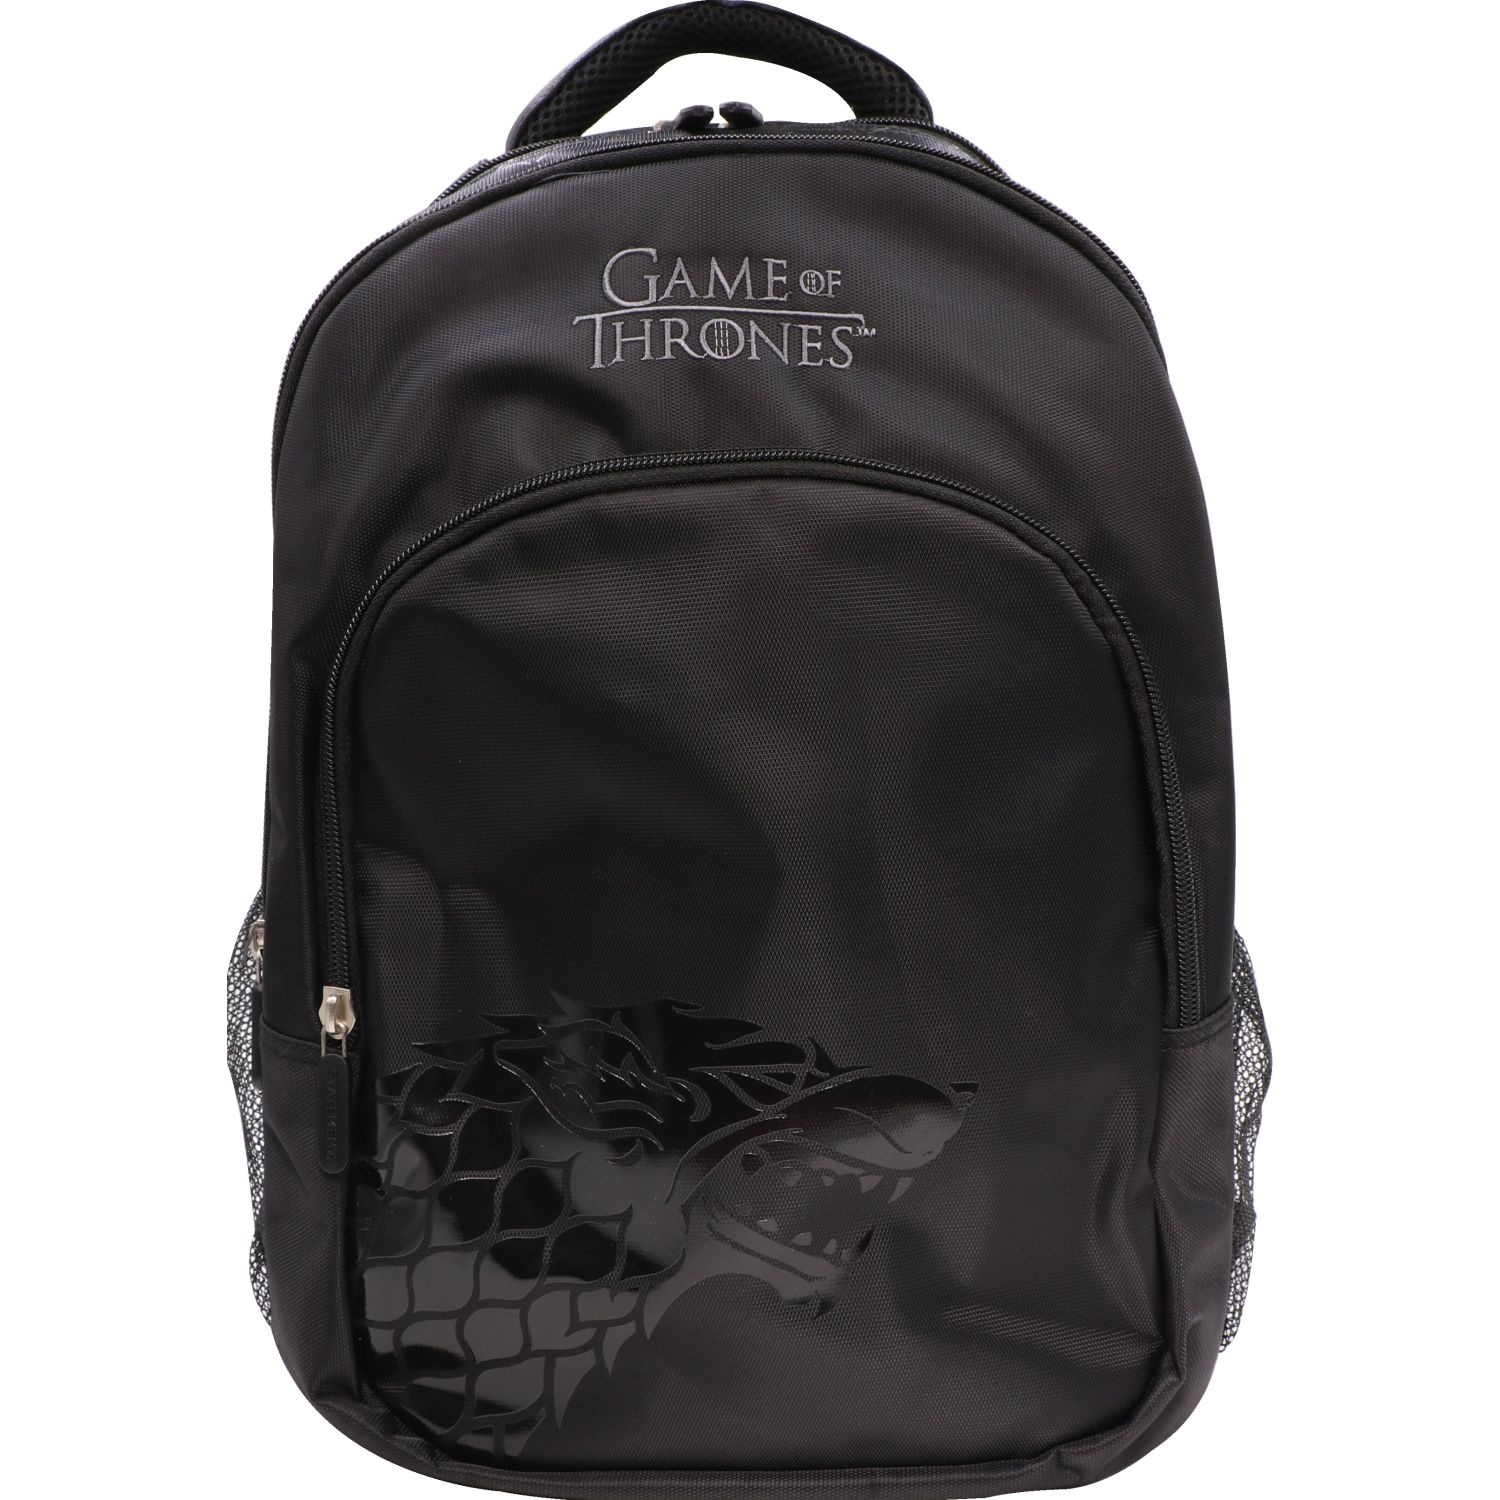 Game Of Thrones mochila game of thrones Negro mochilas